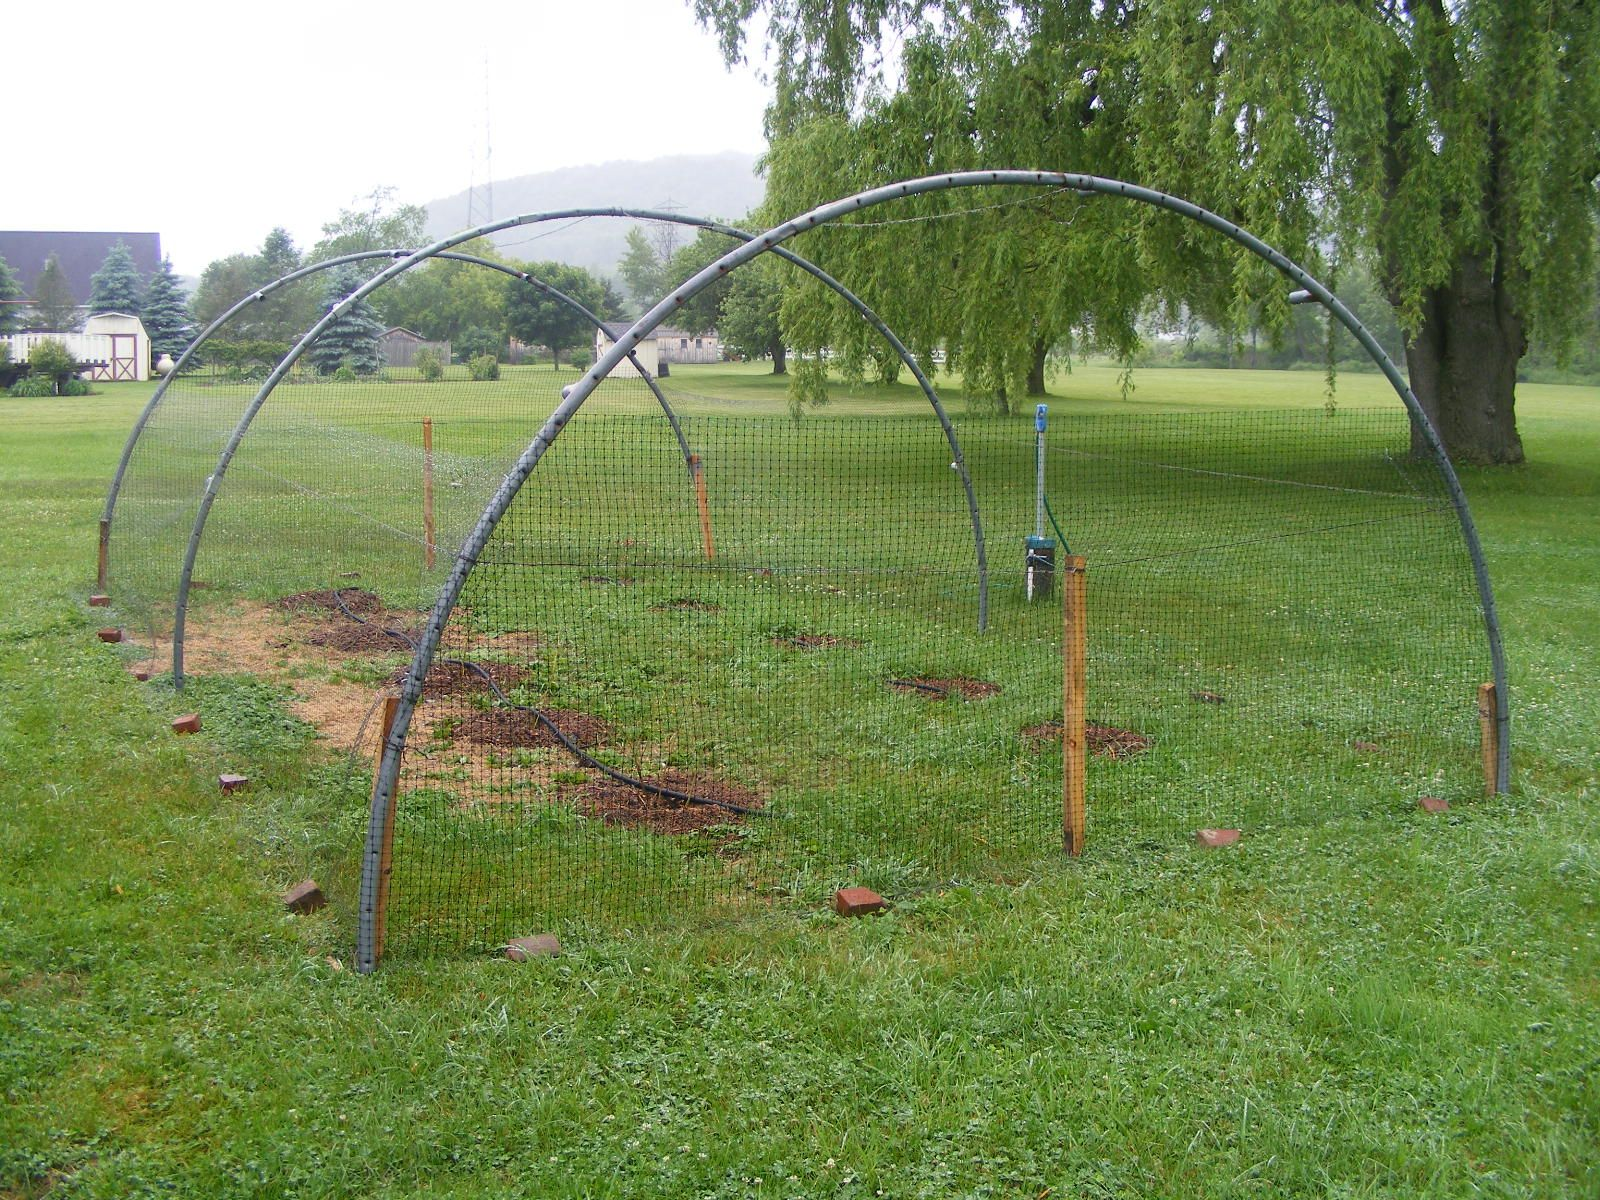 They Use Old Trampoline Frames And Netting To Keep Animals From